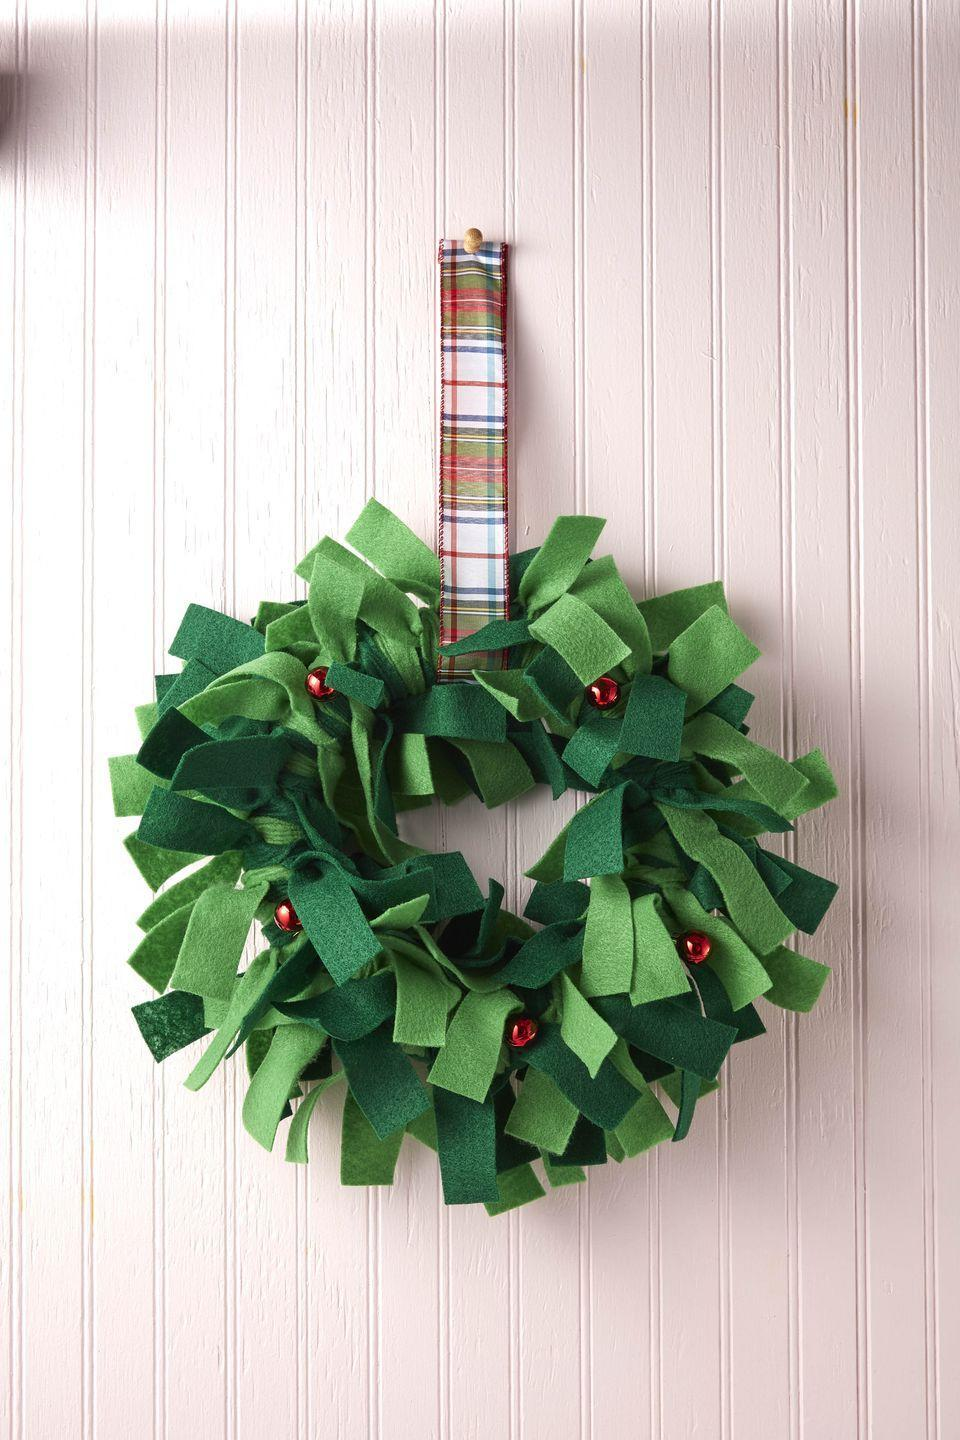 "<p>Simply tie strips of green felt around a wreath form to create this fluffy and fun holiday decor. </p><p><strong>To make:</strong> Cut strips of two different shades of green felt. Tie strips around a wreath form. Attach small red ornaments throughout the wreath with hot glue. Loop a length of wide ribbon around the wreath to hang. </p><p><a class=""link rapid-noclick-resp"" href=""https://www.amazon.com/Greens-Merino-Felt-Sheets-Collection/dp/B01N7X0RIH/ref=sr_1_17?tag=syn-yahoo-20&ascsubtag=%5Bartid%7C10050.g.5030%5Bsrc%7Cyahoo-us"" rel=""nofollow noopener"" target=""_blank"" data-ylk=""slk:SHOP GREEN FELT"">SHOP GREEN FELT</a></p>"